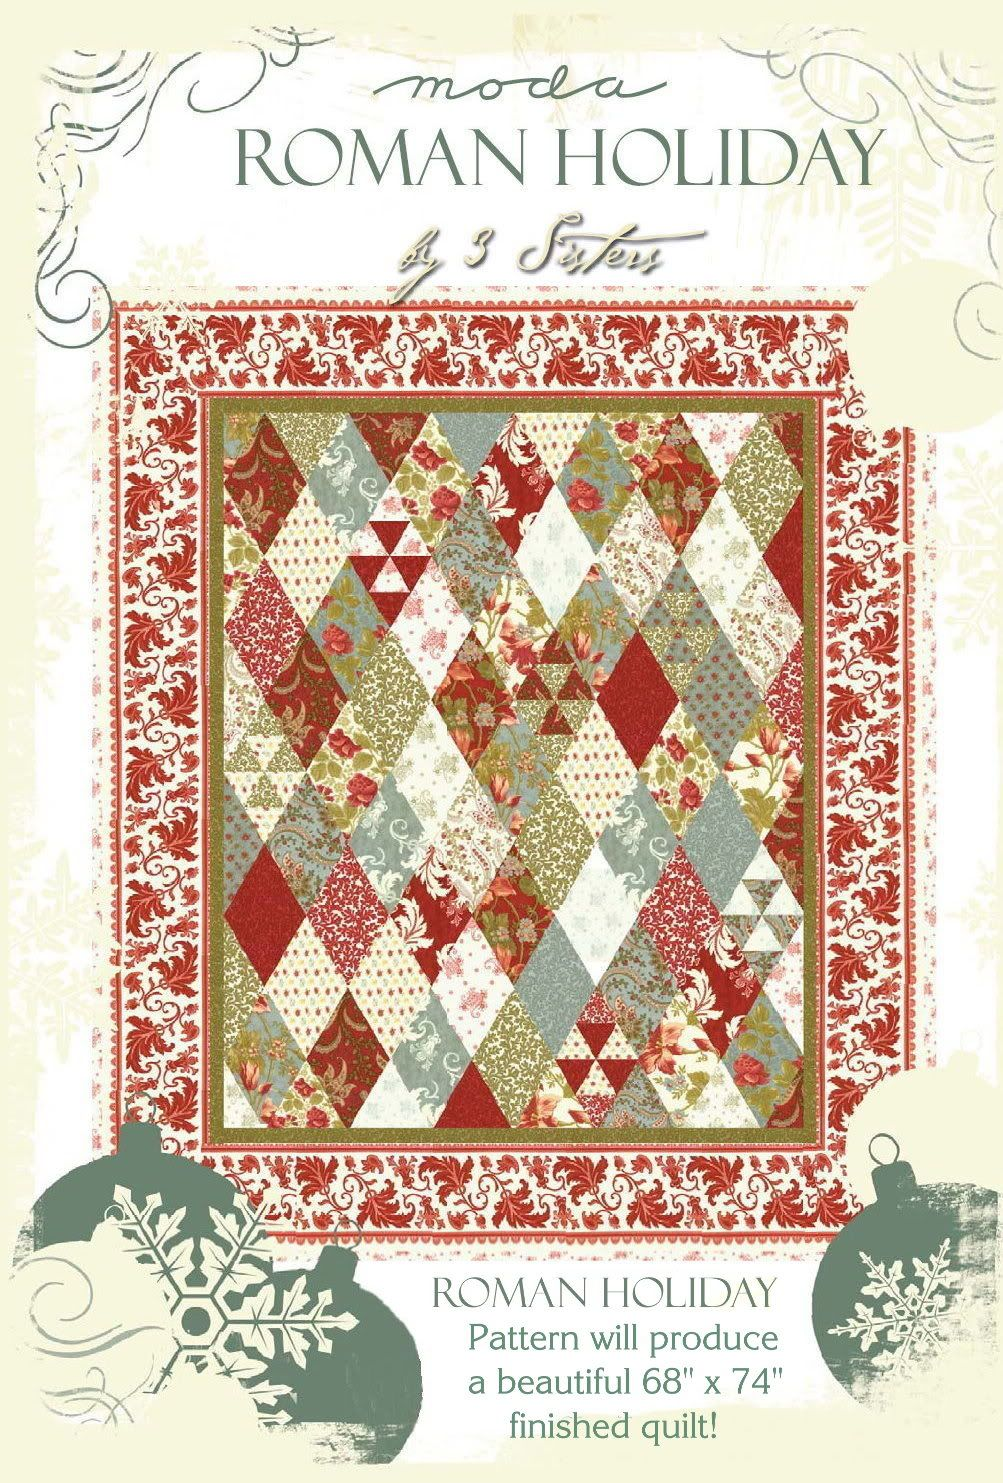 ROMAN HOLIDAY QUILT PATTERN + Moda CHARM PACK by 3 SISTERS Fabric ... : moda quilt fabric - Adamdwight.com